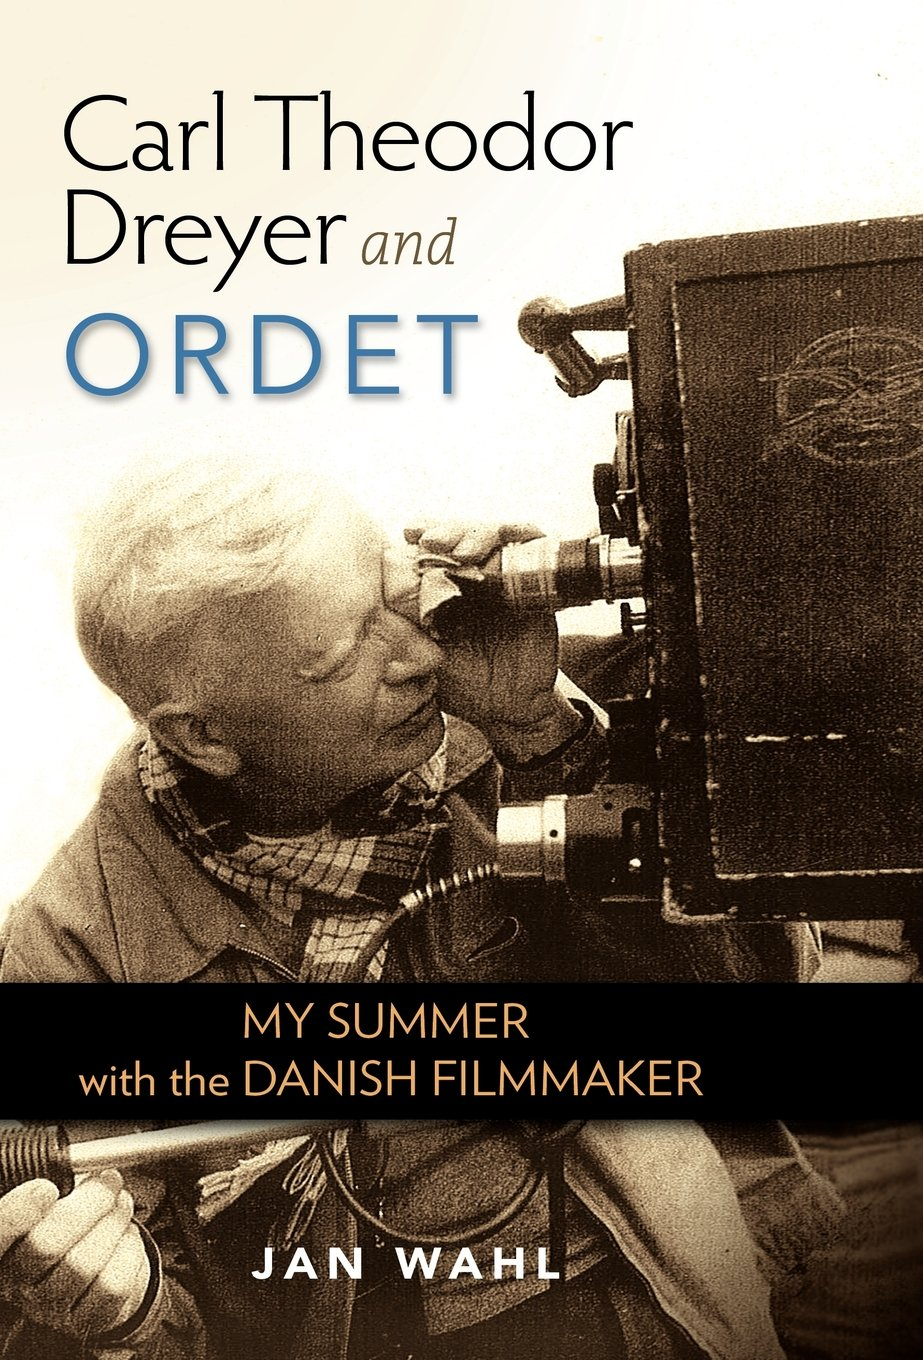 Carl Theodor Dreyer Collection Carl Theodor Dreyer And Ordet